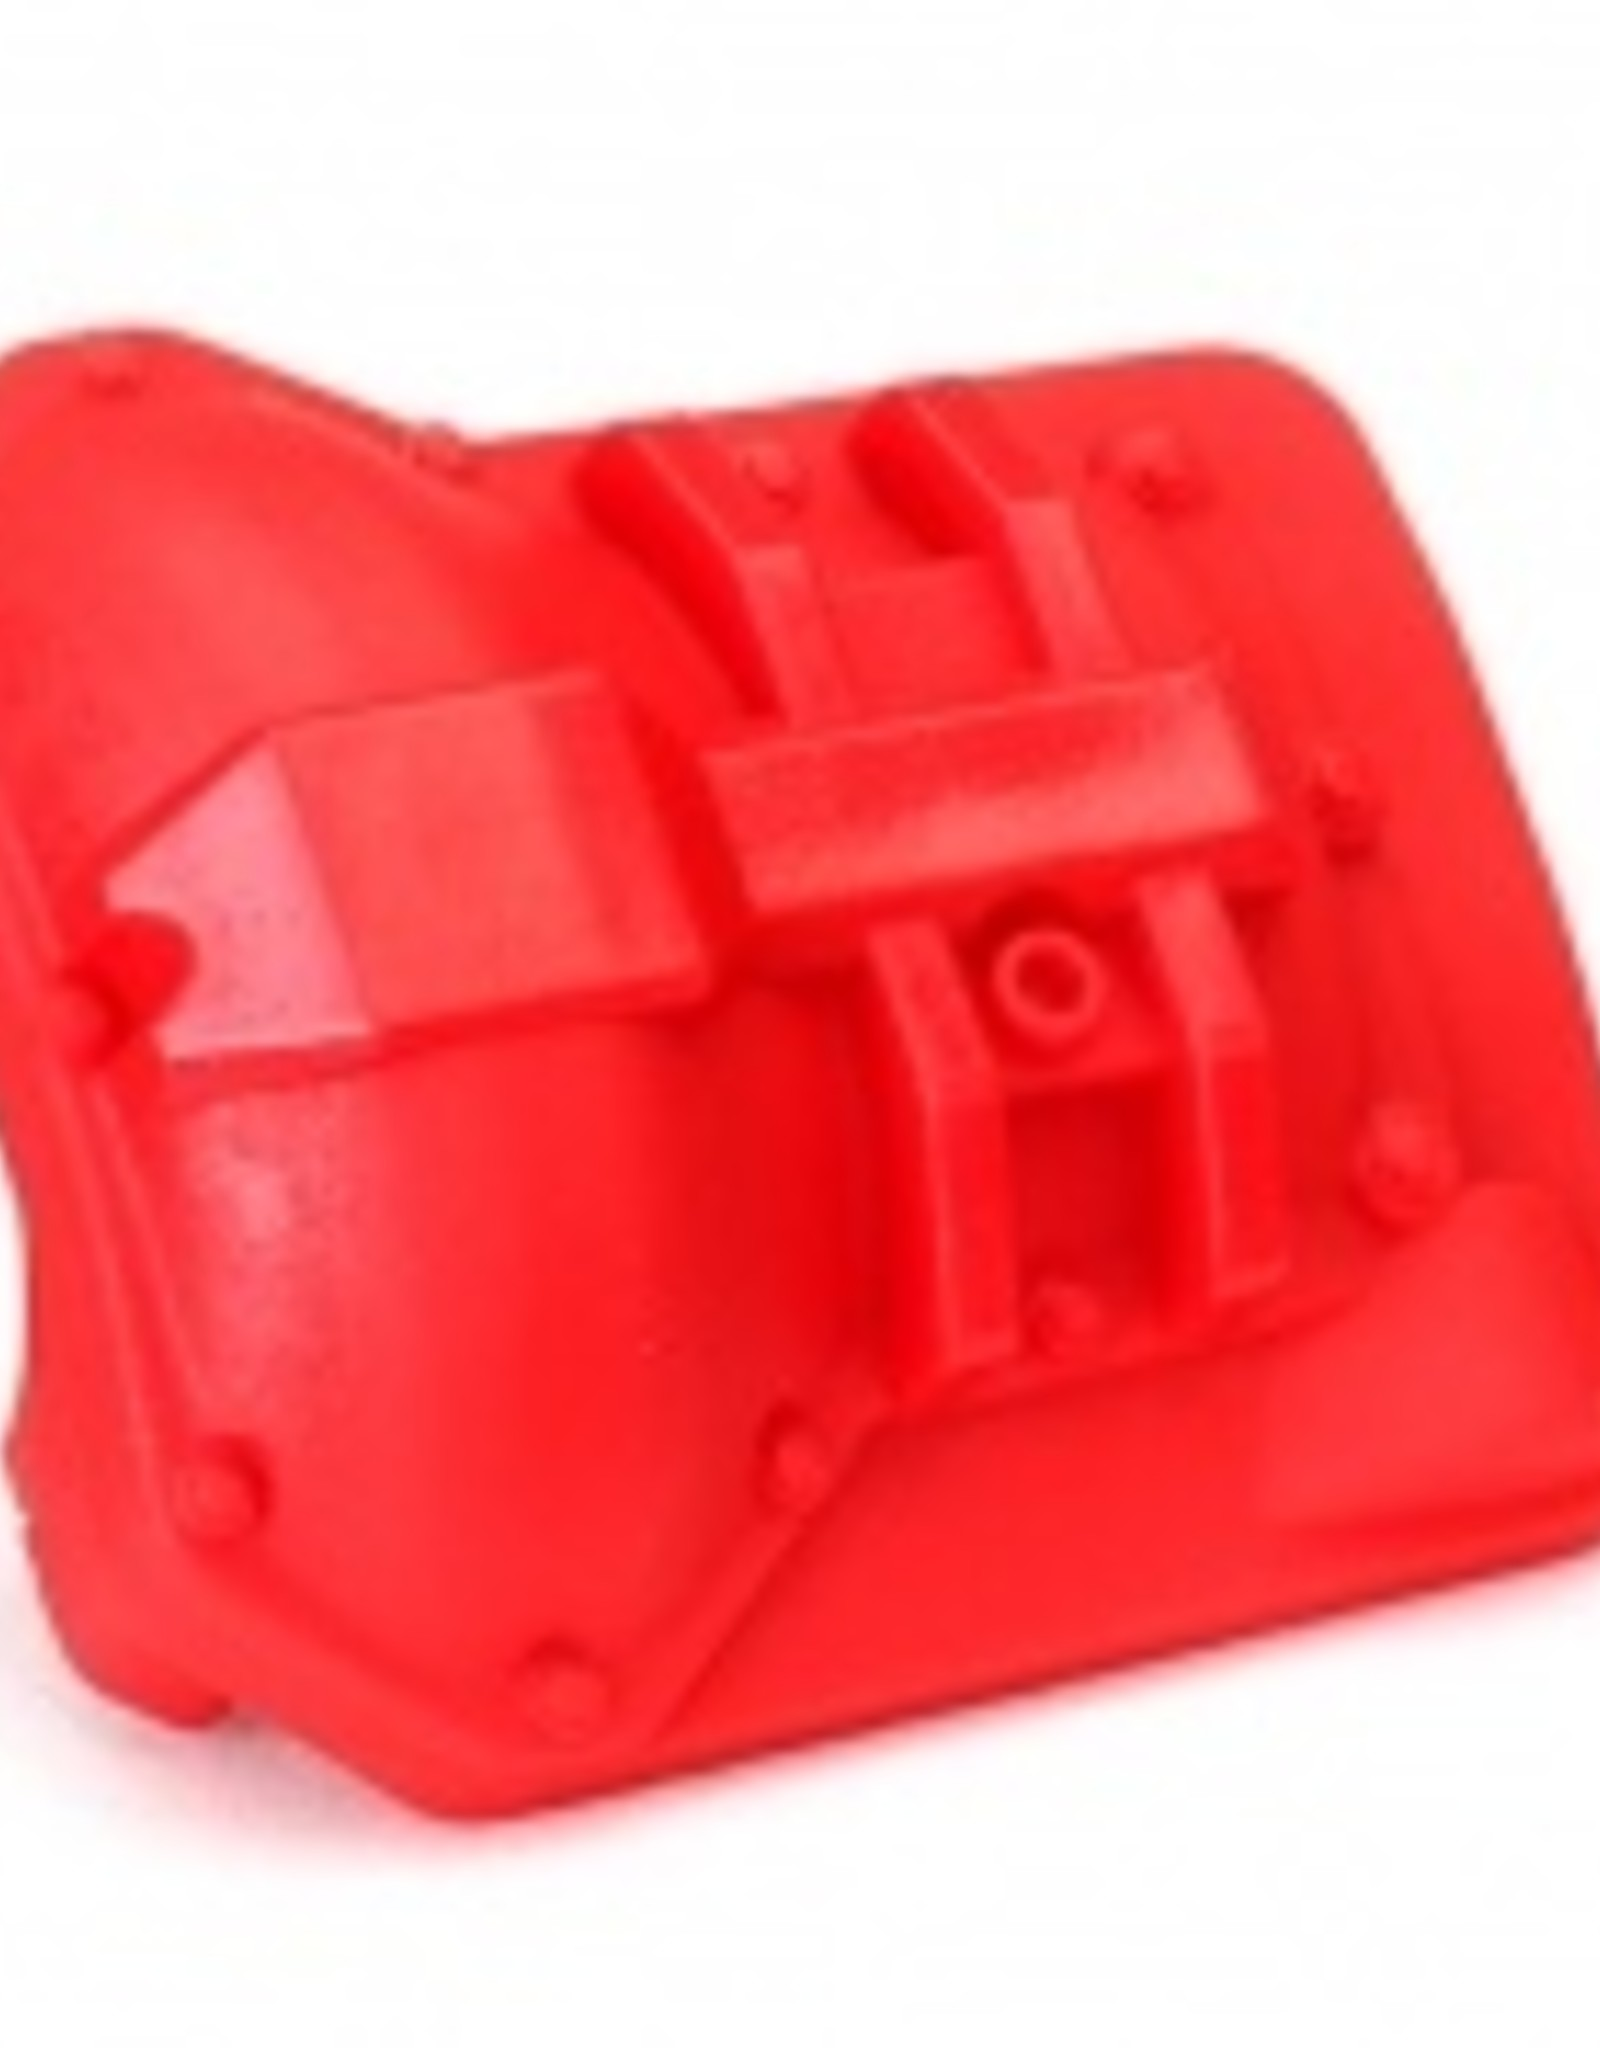 Traxxas Traxxas TRX Differential cover, front or rear (red)